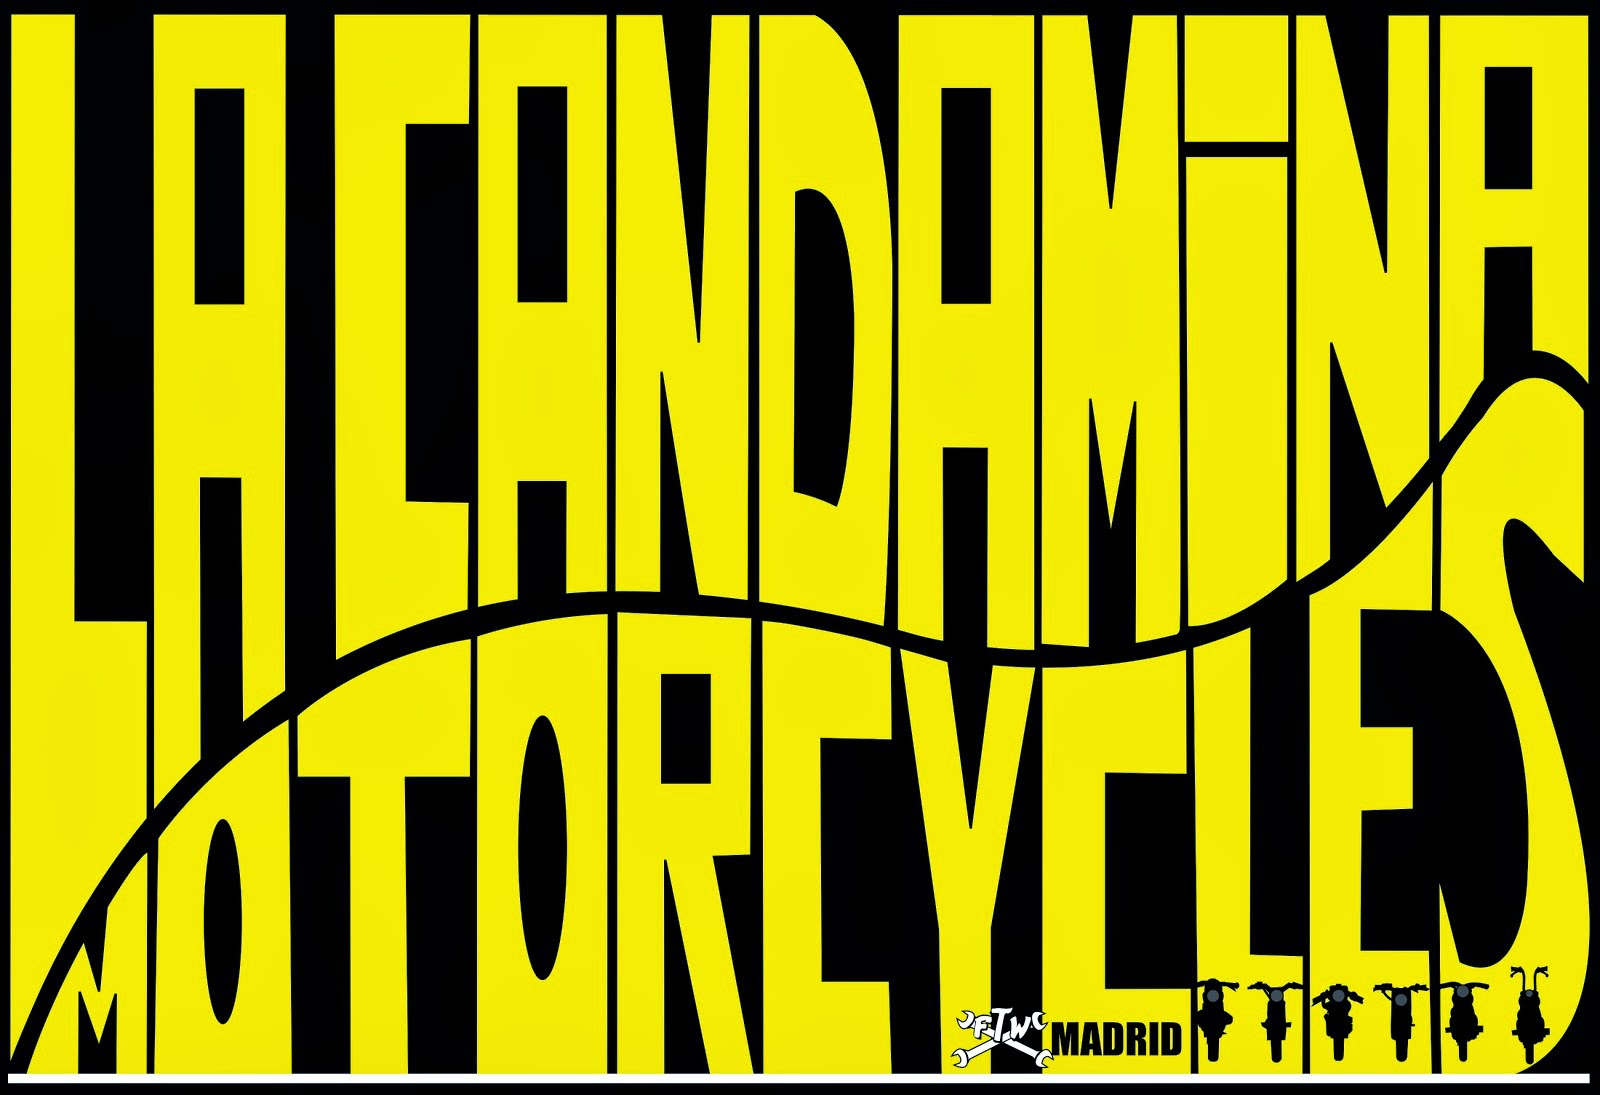 La Candamina Motorcycles. Madrid